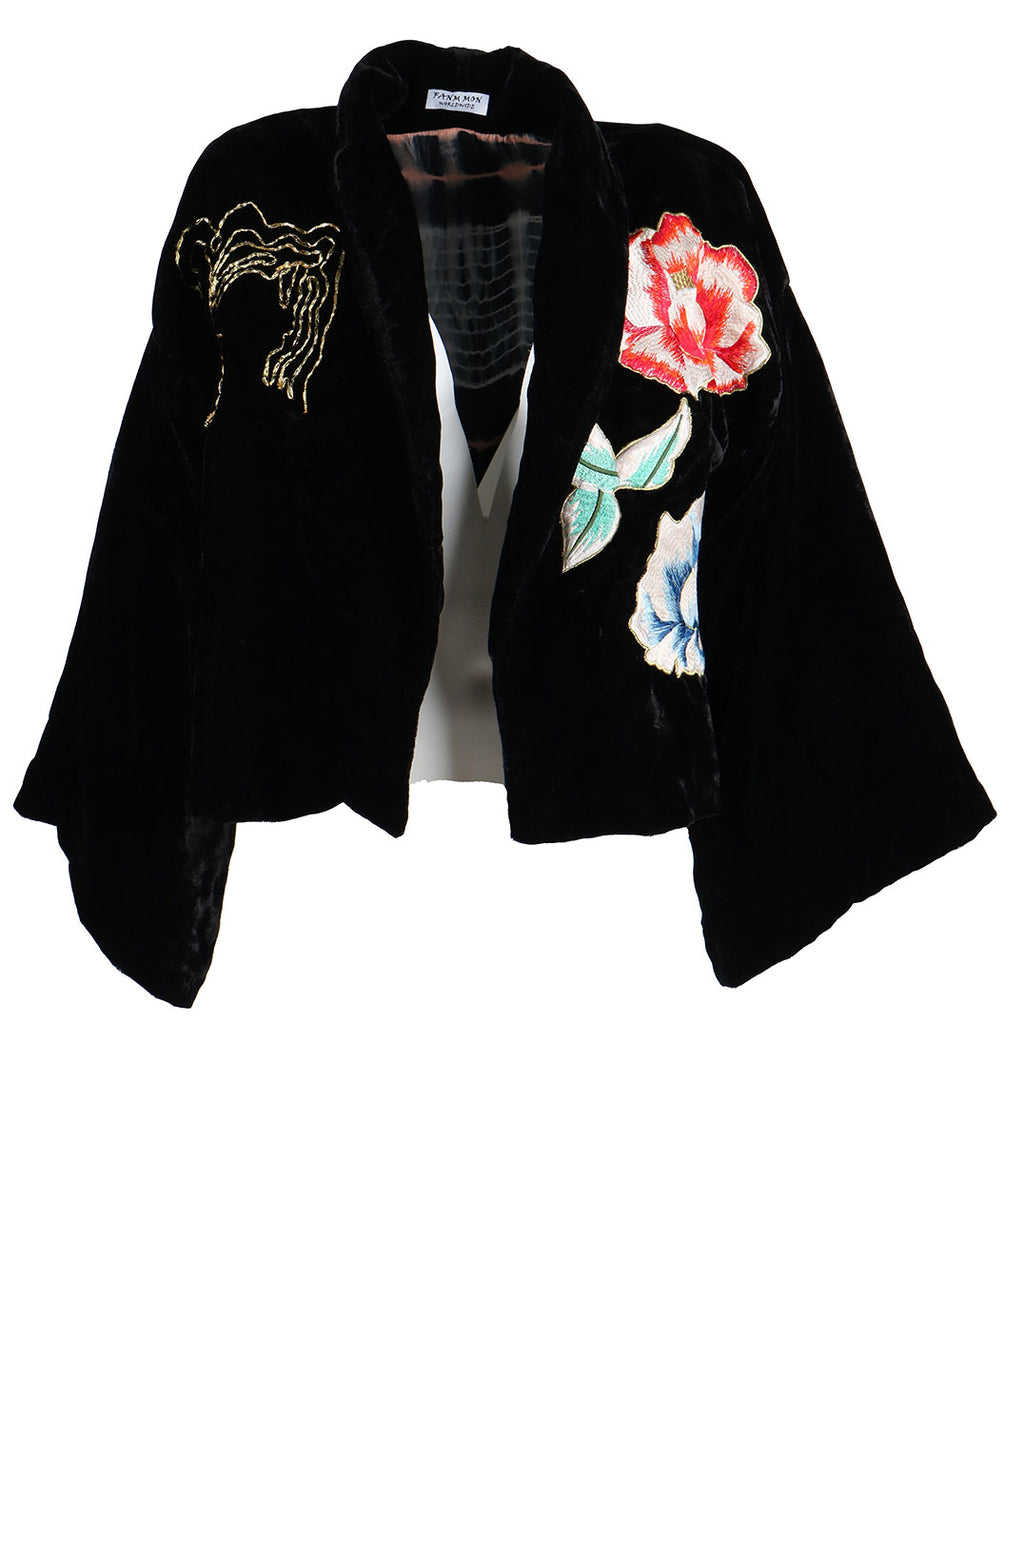 Fanm Mon  LOURDE Vyshyvanka Black Velvet Jacket Dress Embroidered Multi Floral Color Jacket